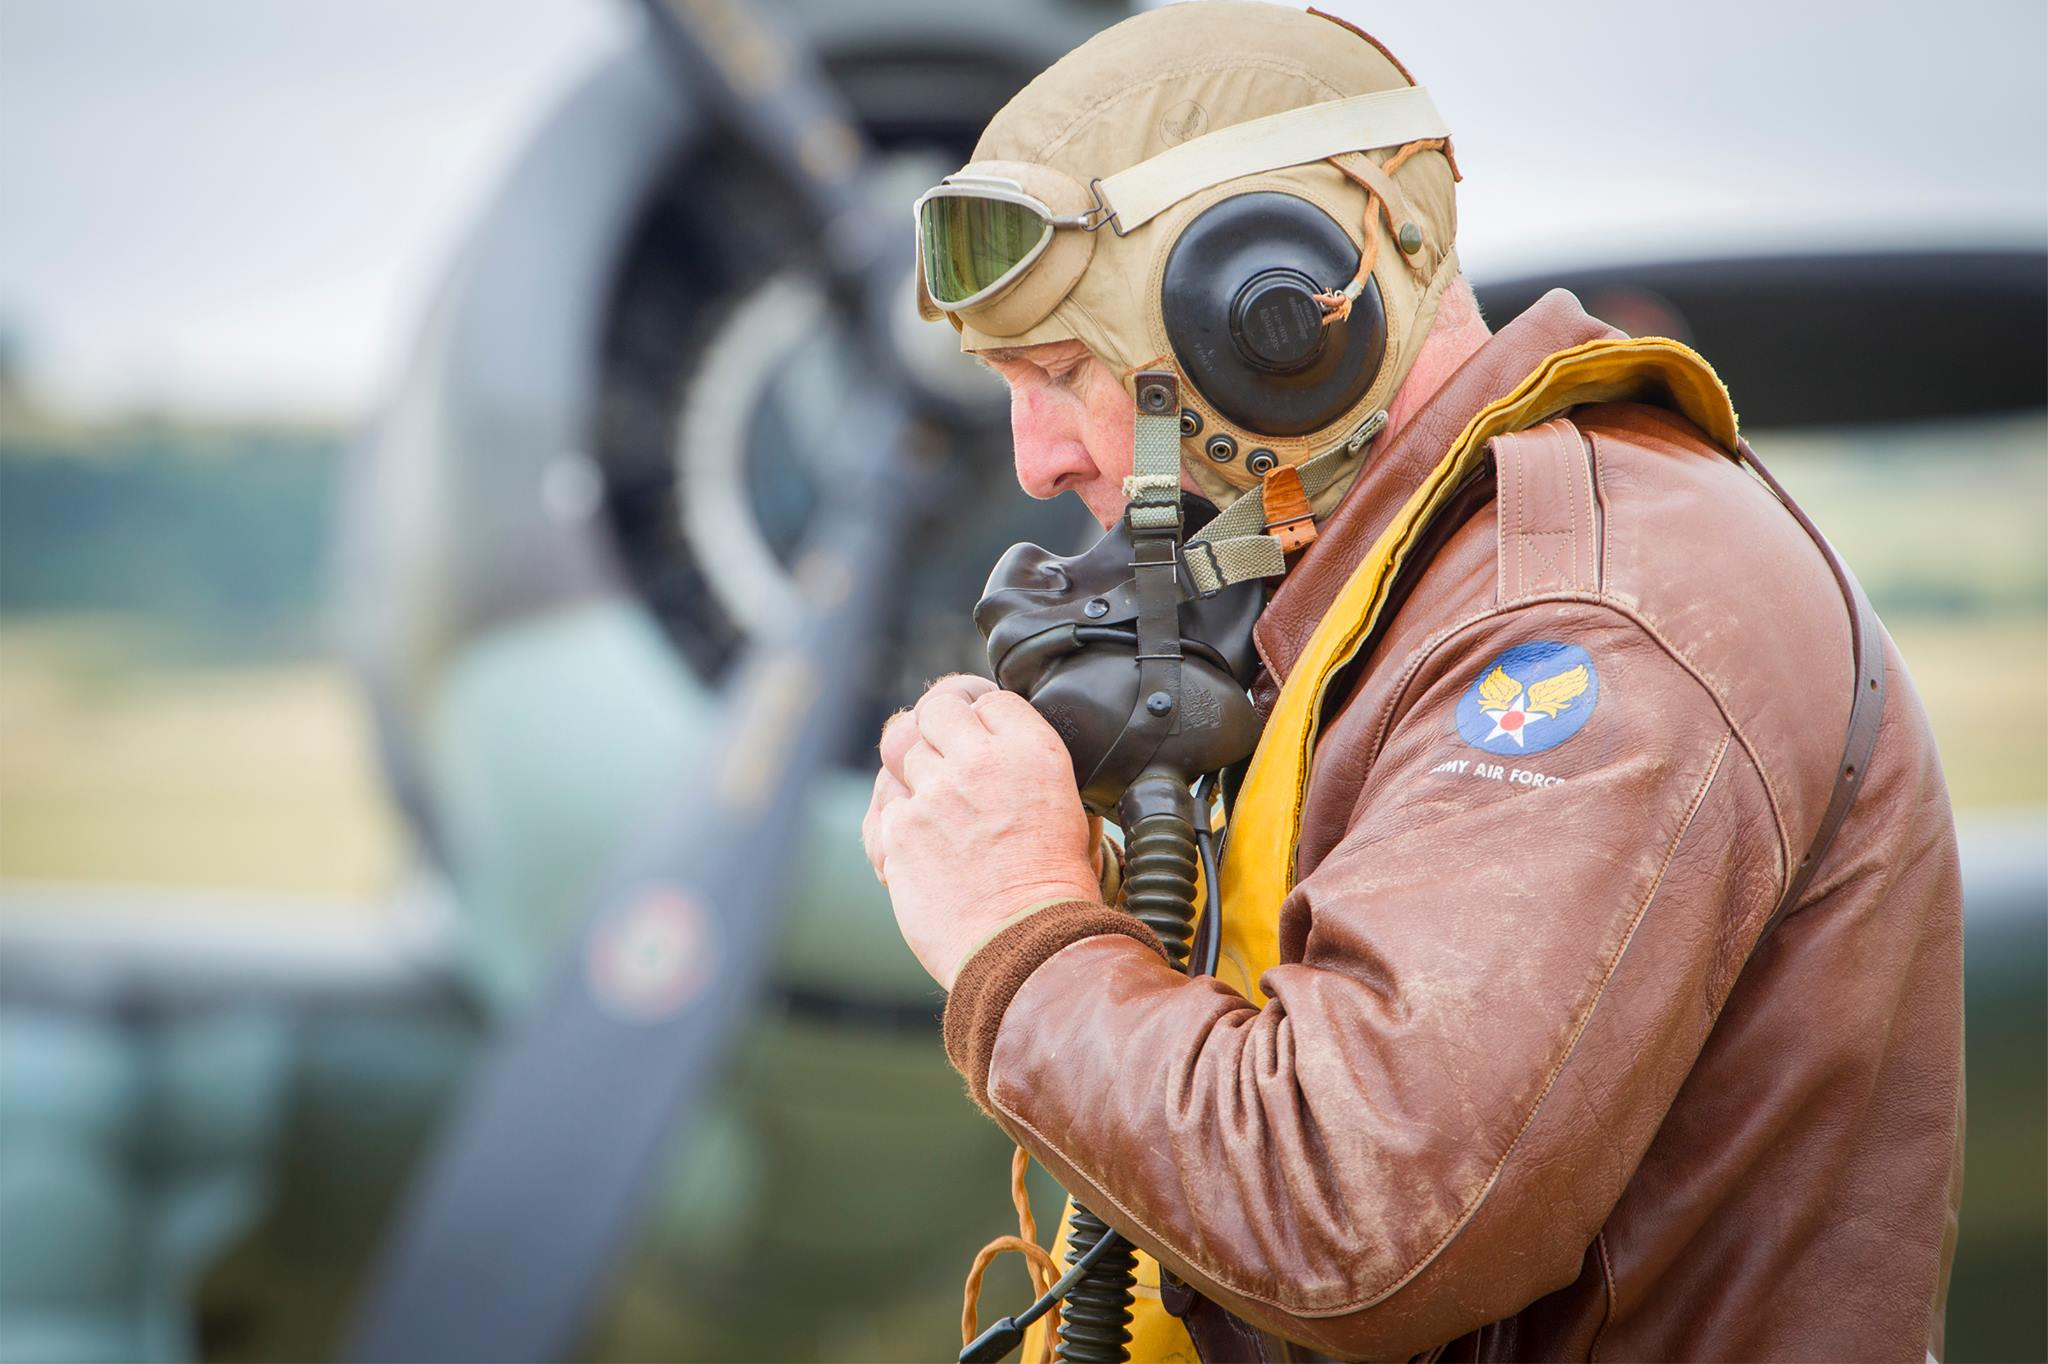 Cutting-edge aviation technology on show at IWM Duxford's American Air Show